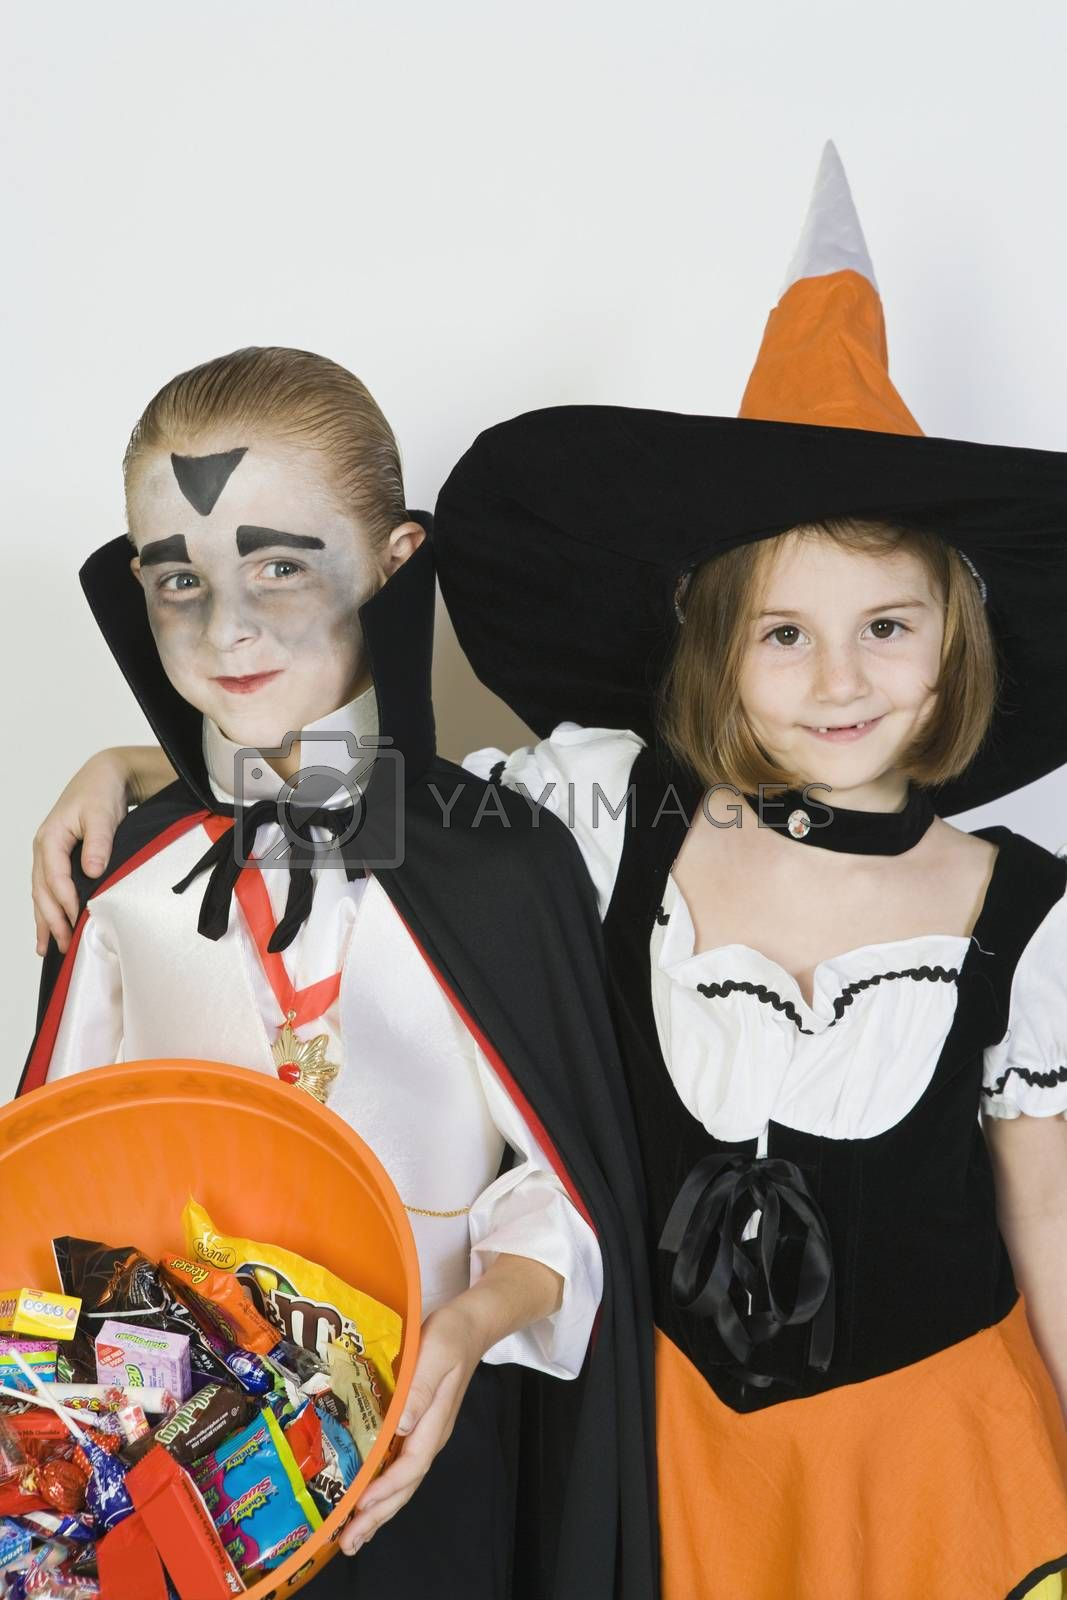 Portrait of girl embracing boy (7-9) wearing Halloween costumes by moodboard